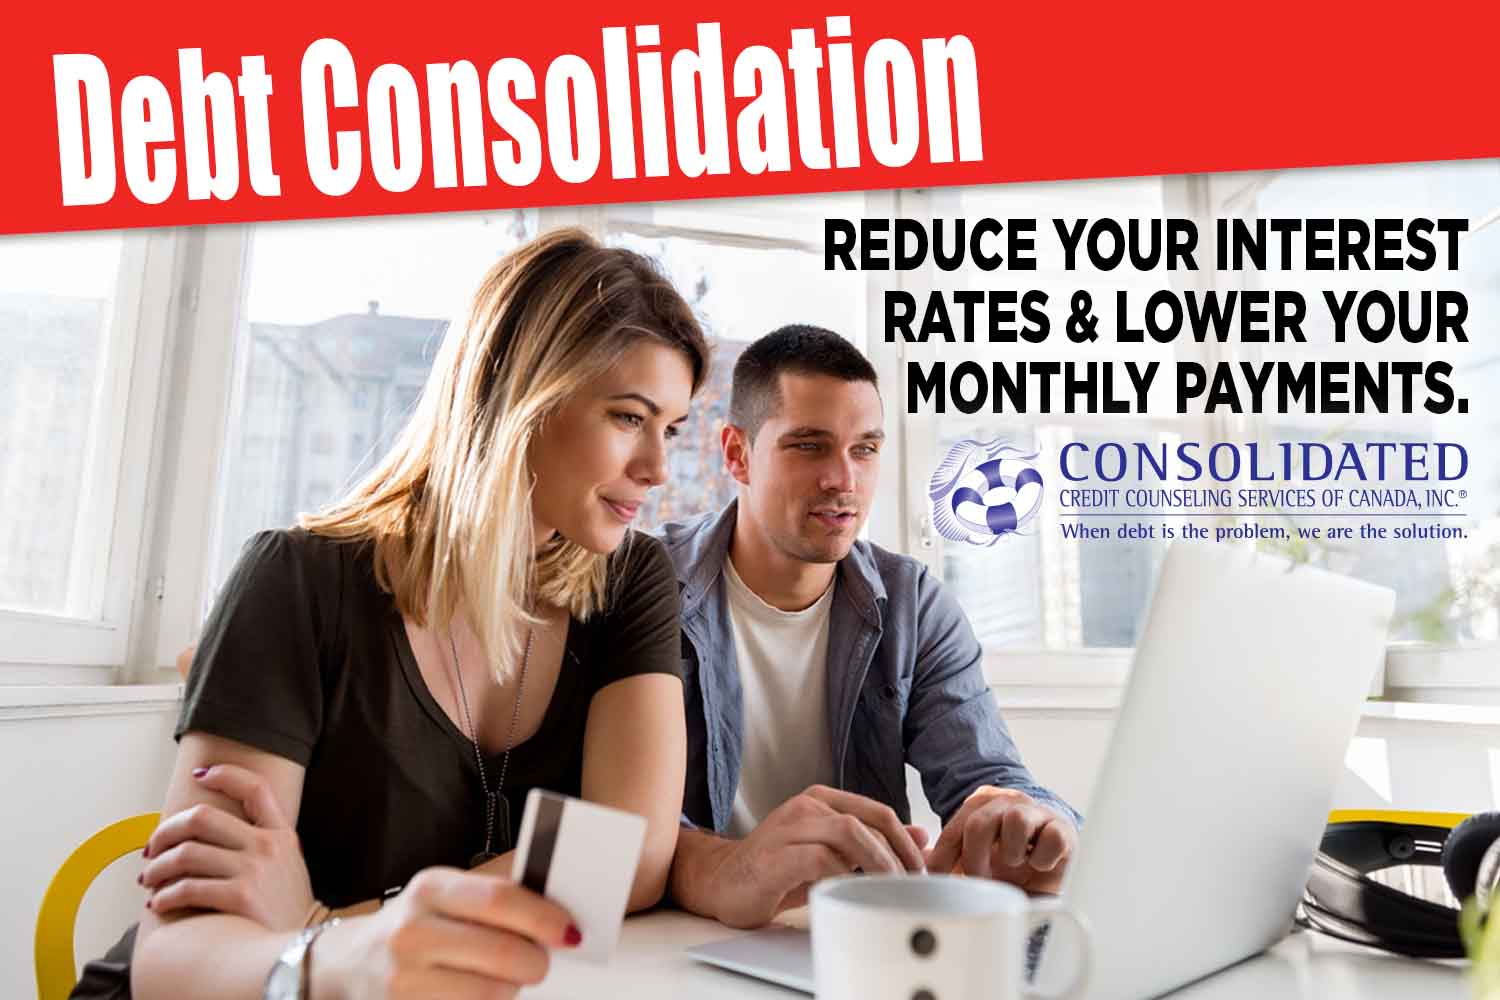 Debt Consolidation: Reduce Your Interest Rates and Lower Your Monthly Payments.